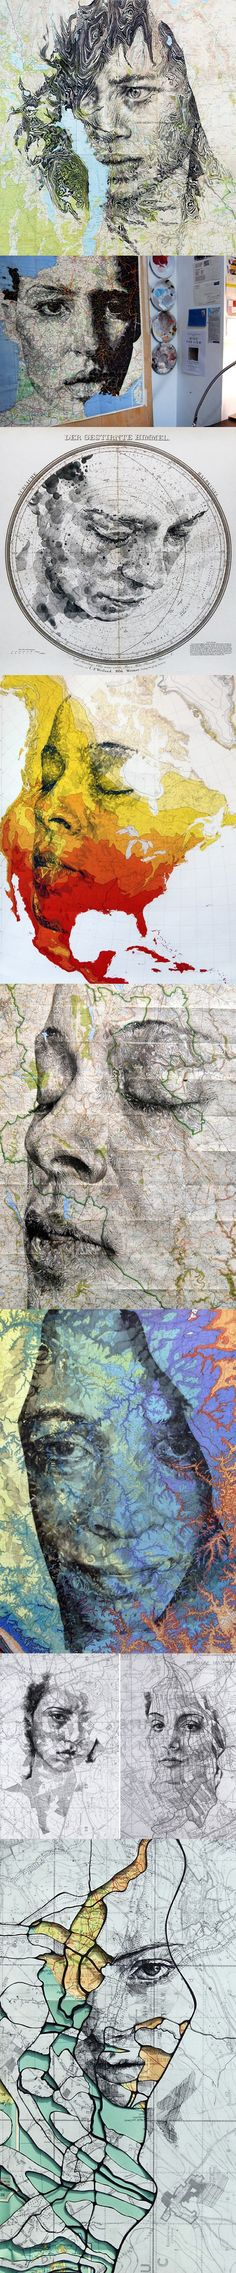 Ed Fairburn - pencil and ink portaits on topographical maps, art, illustrations, portraits